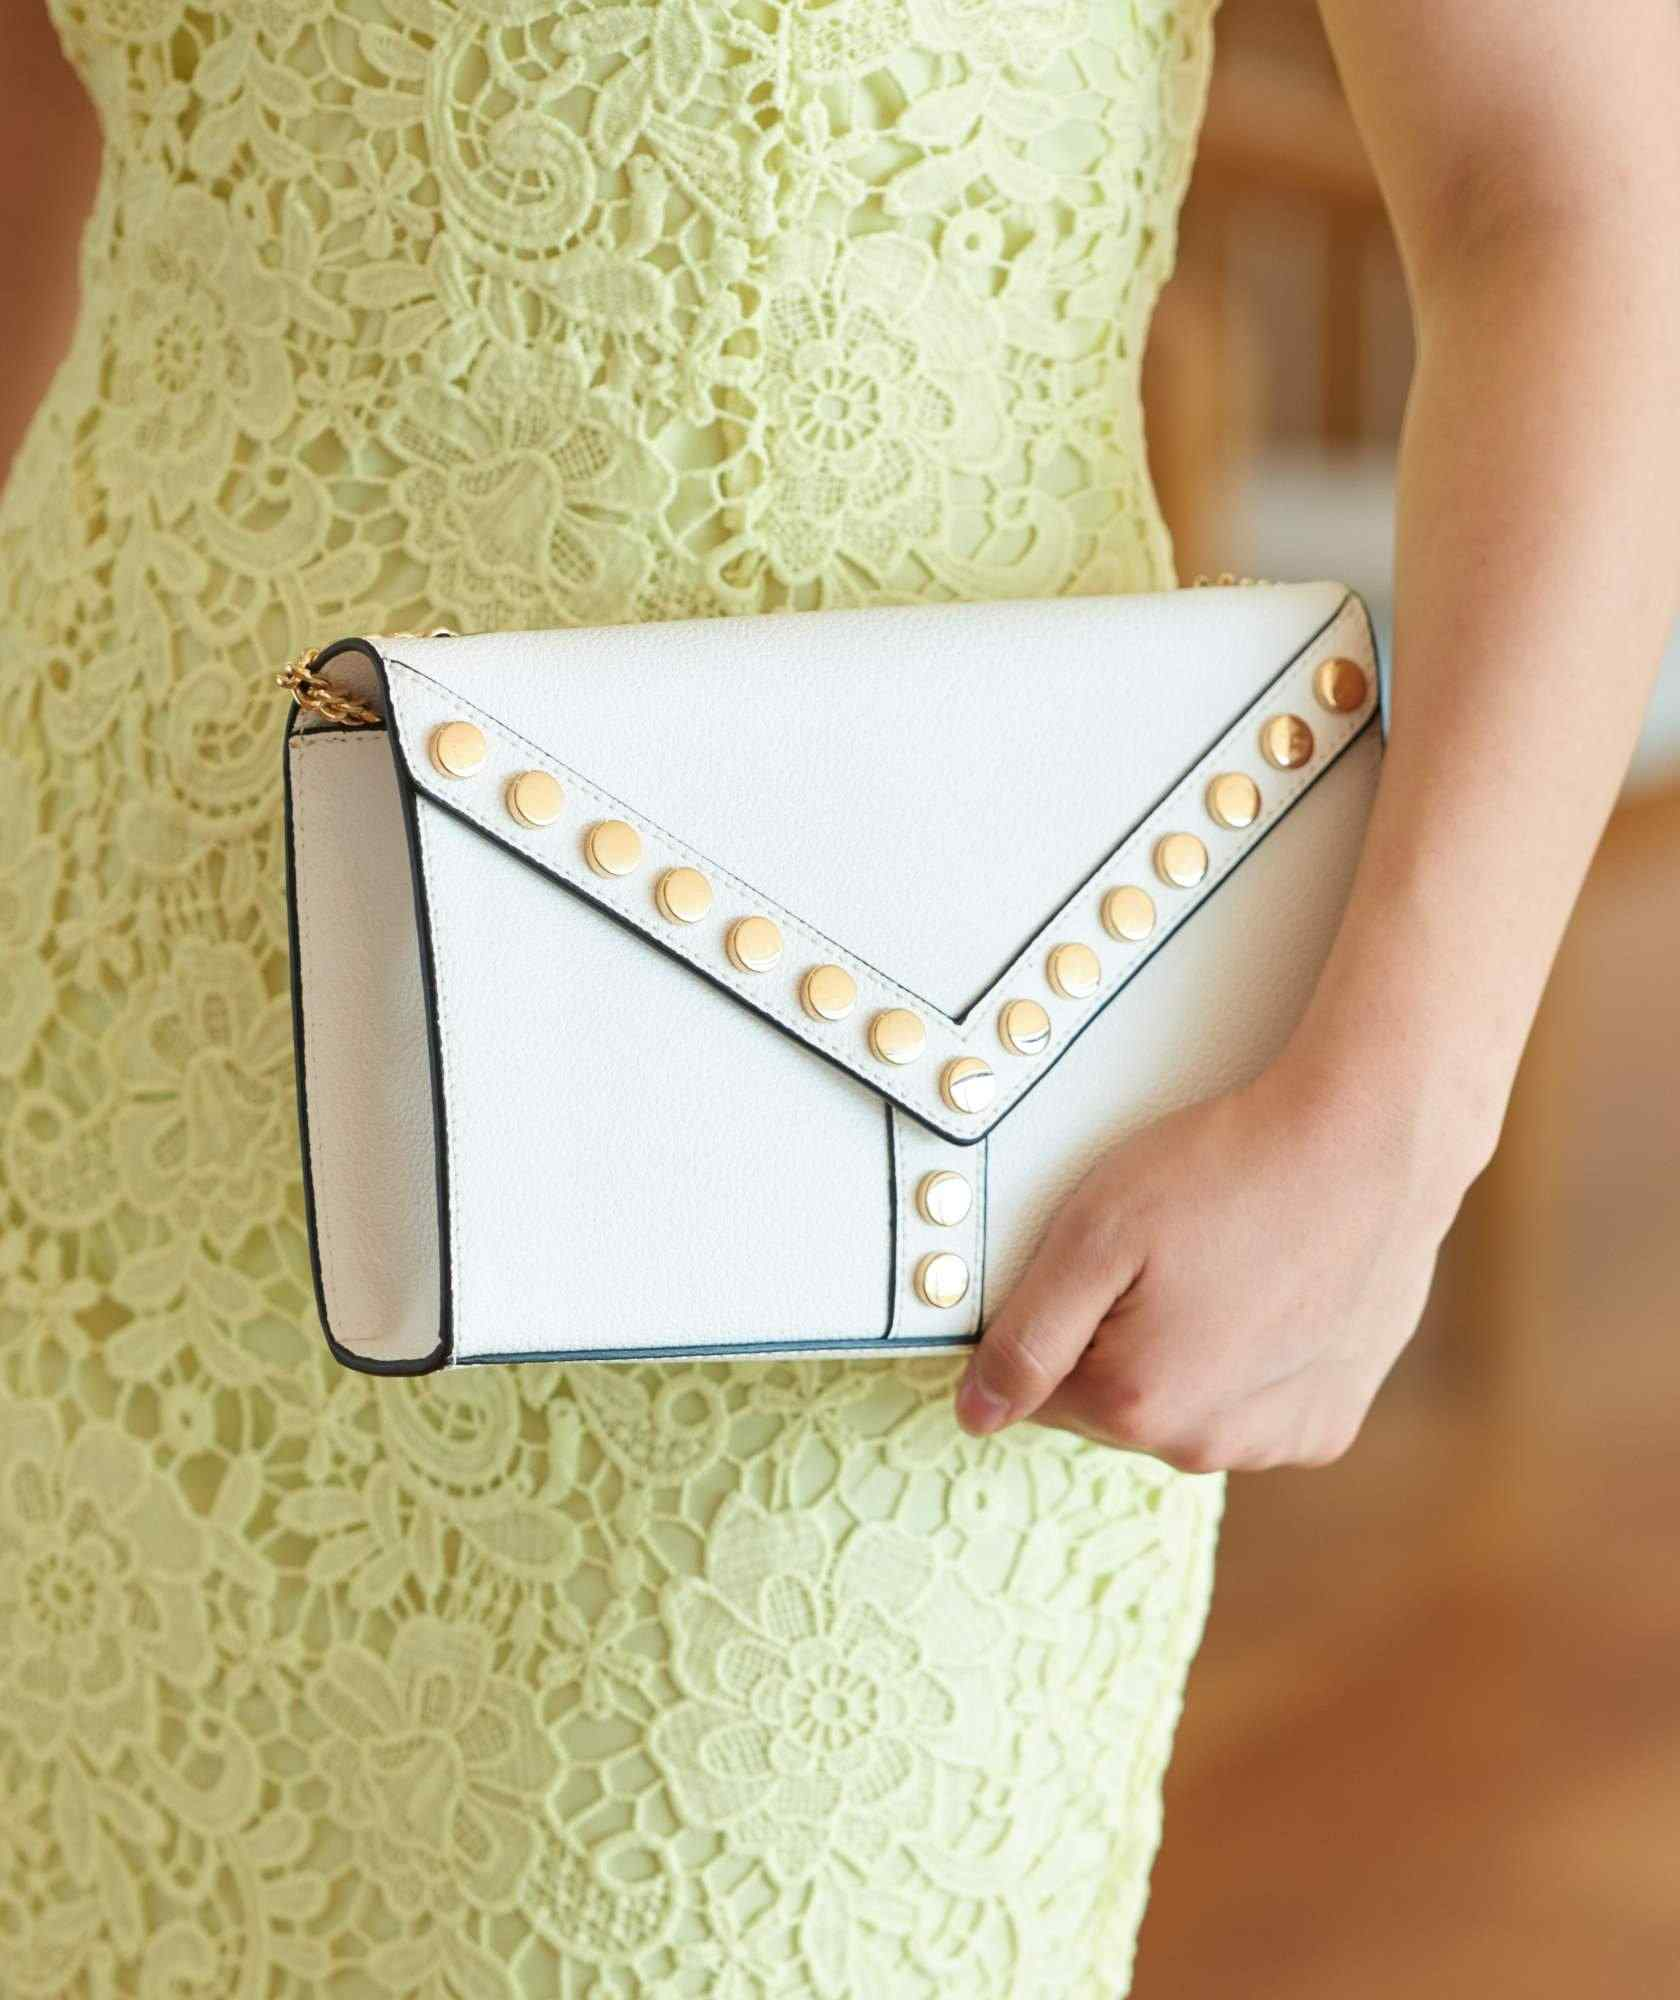 White Square Clutch bag